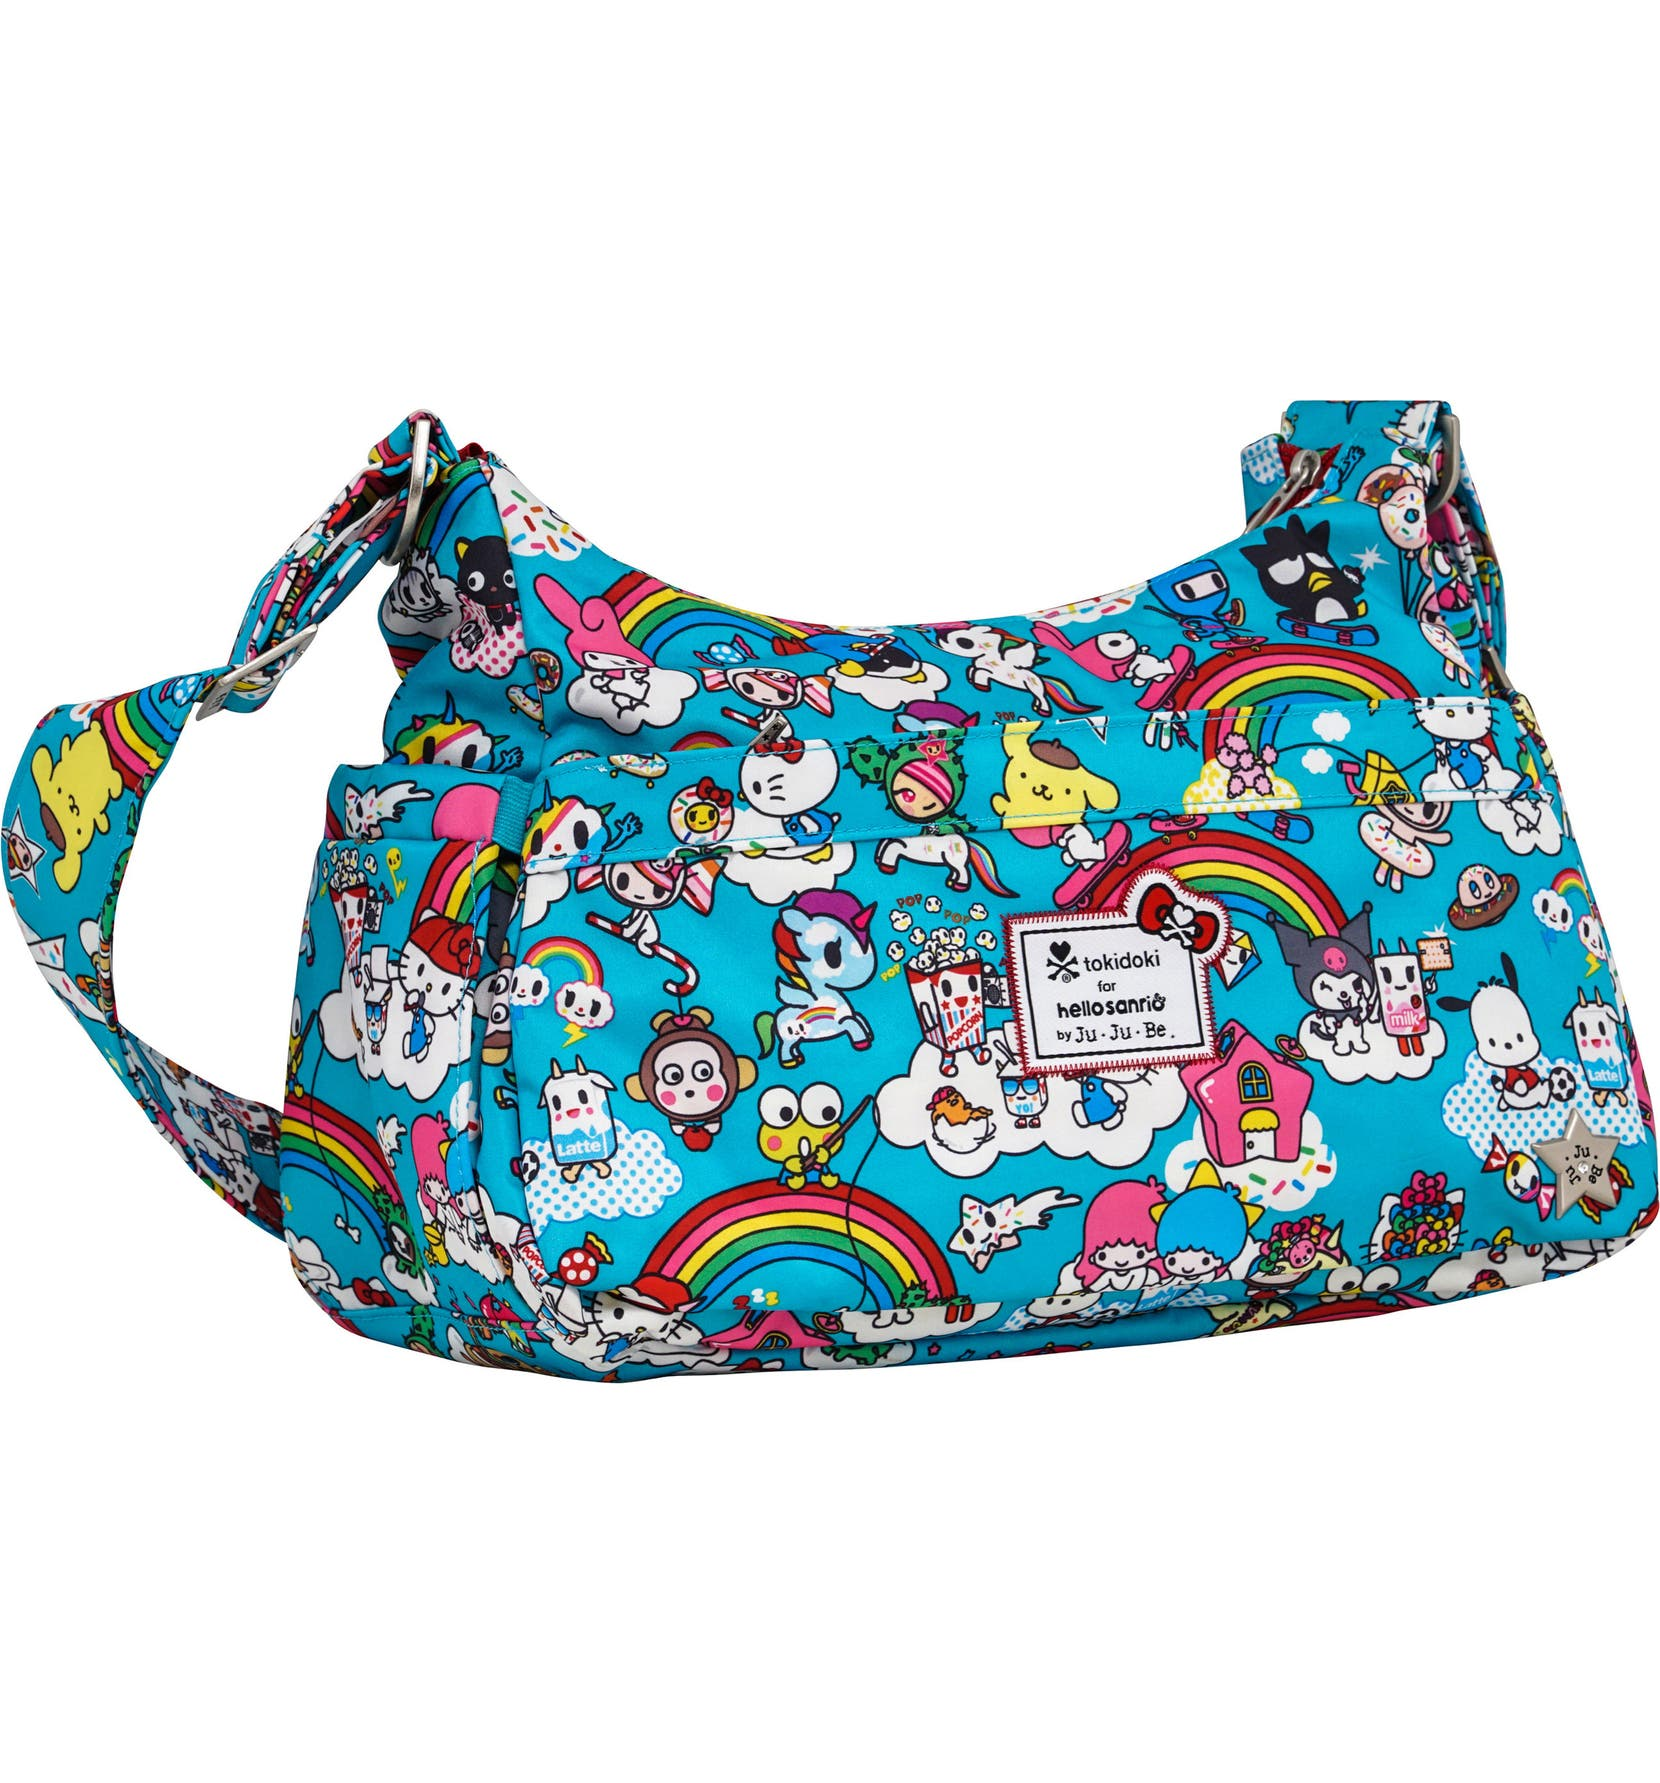 4bb59070282e Ju-Ju-Be x tokidoki for Hello Sanrio Rainbow Dreams Be Hobo Diaper Bag